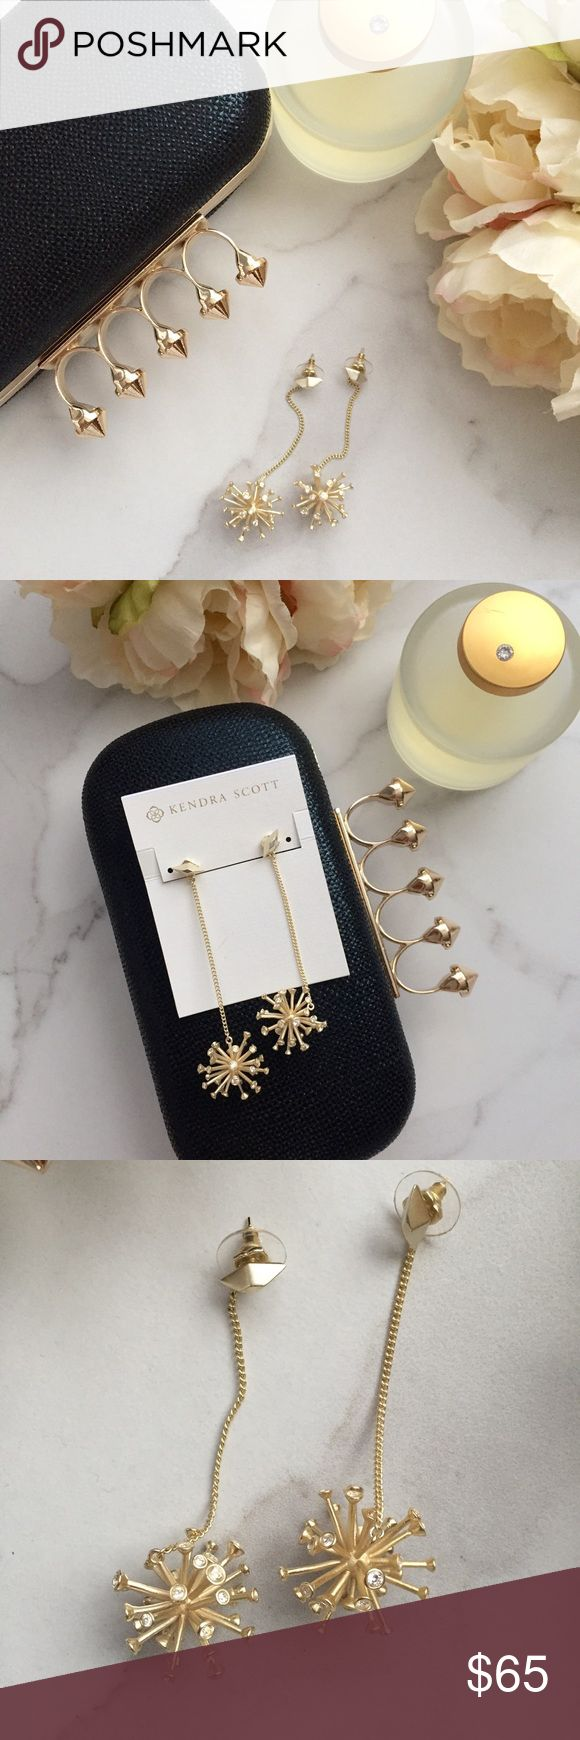 🆕 Kendra Scott Tricia drop earrings Beautiful statement drop earrings by Kendra Scott have a slender gold cable chain with a starburst bauble accented with sparkling crystals.  Brand new and never worn. Will come with dust bag! Last picture for modeling purposes only (GOLD in 1st 4 pics is actual item for sale)! Kendra Scott Jewelry Earrings